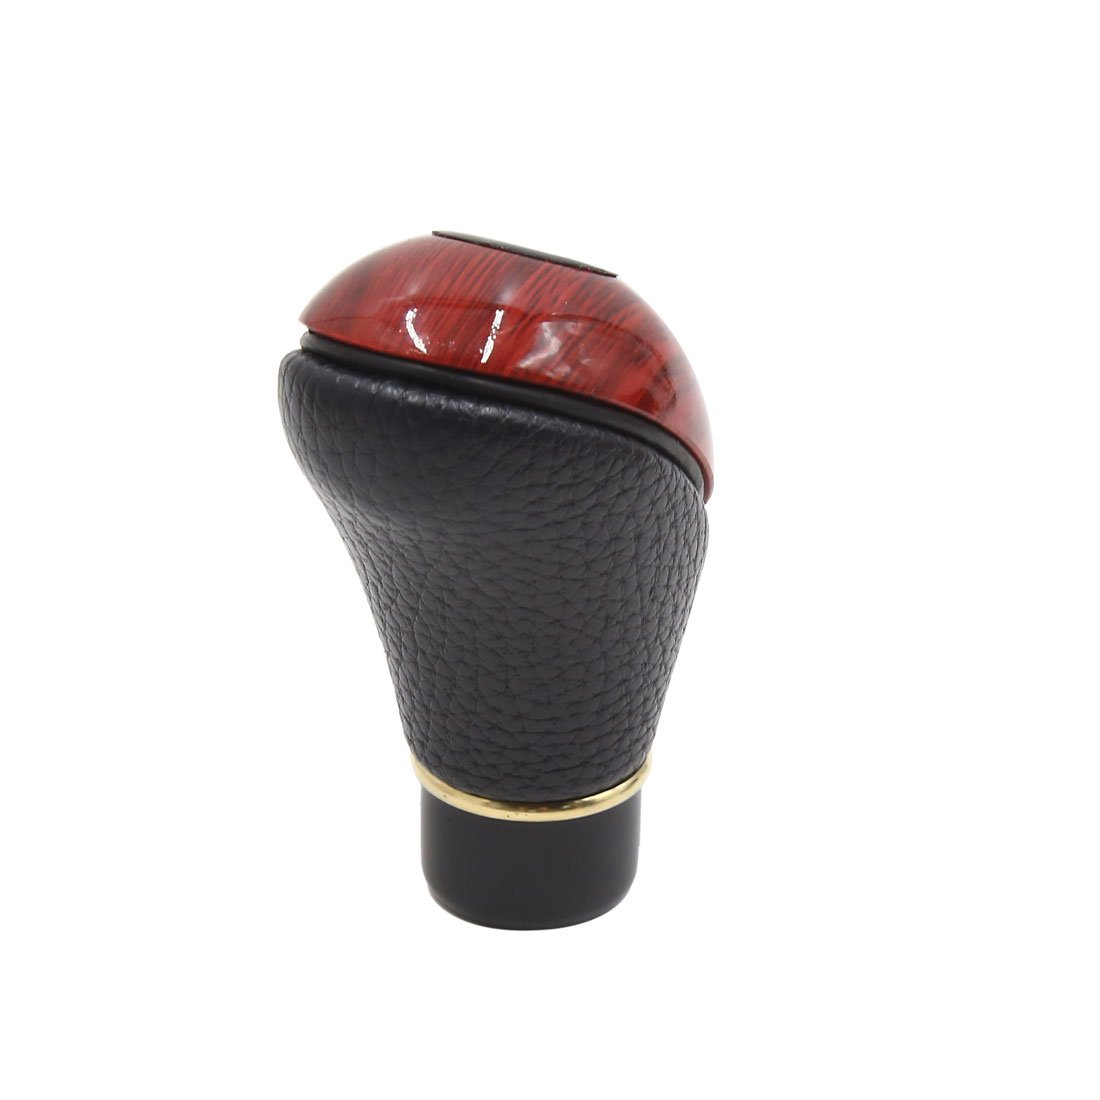 uxcell a18042600ux0069 Black Faux Leather Wood Auto Car 5 Speed Manual Gear Stick Shift Knob Shifter